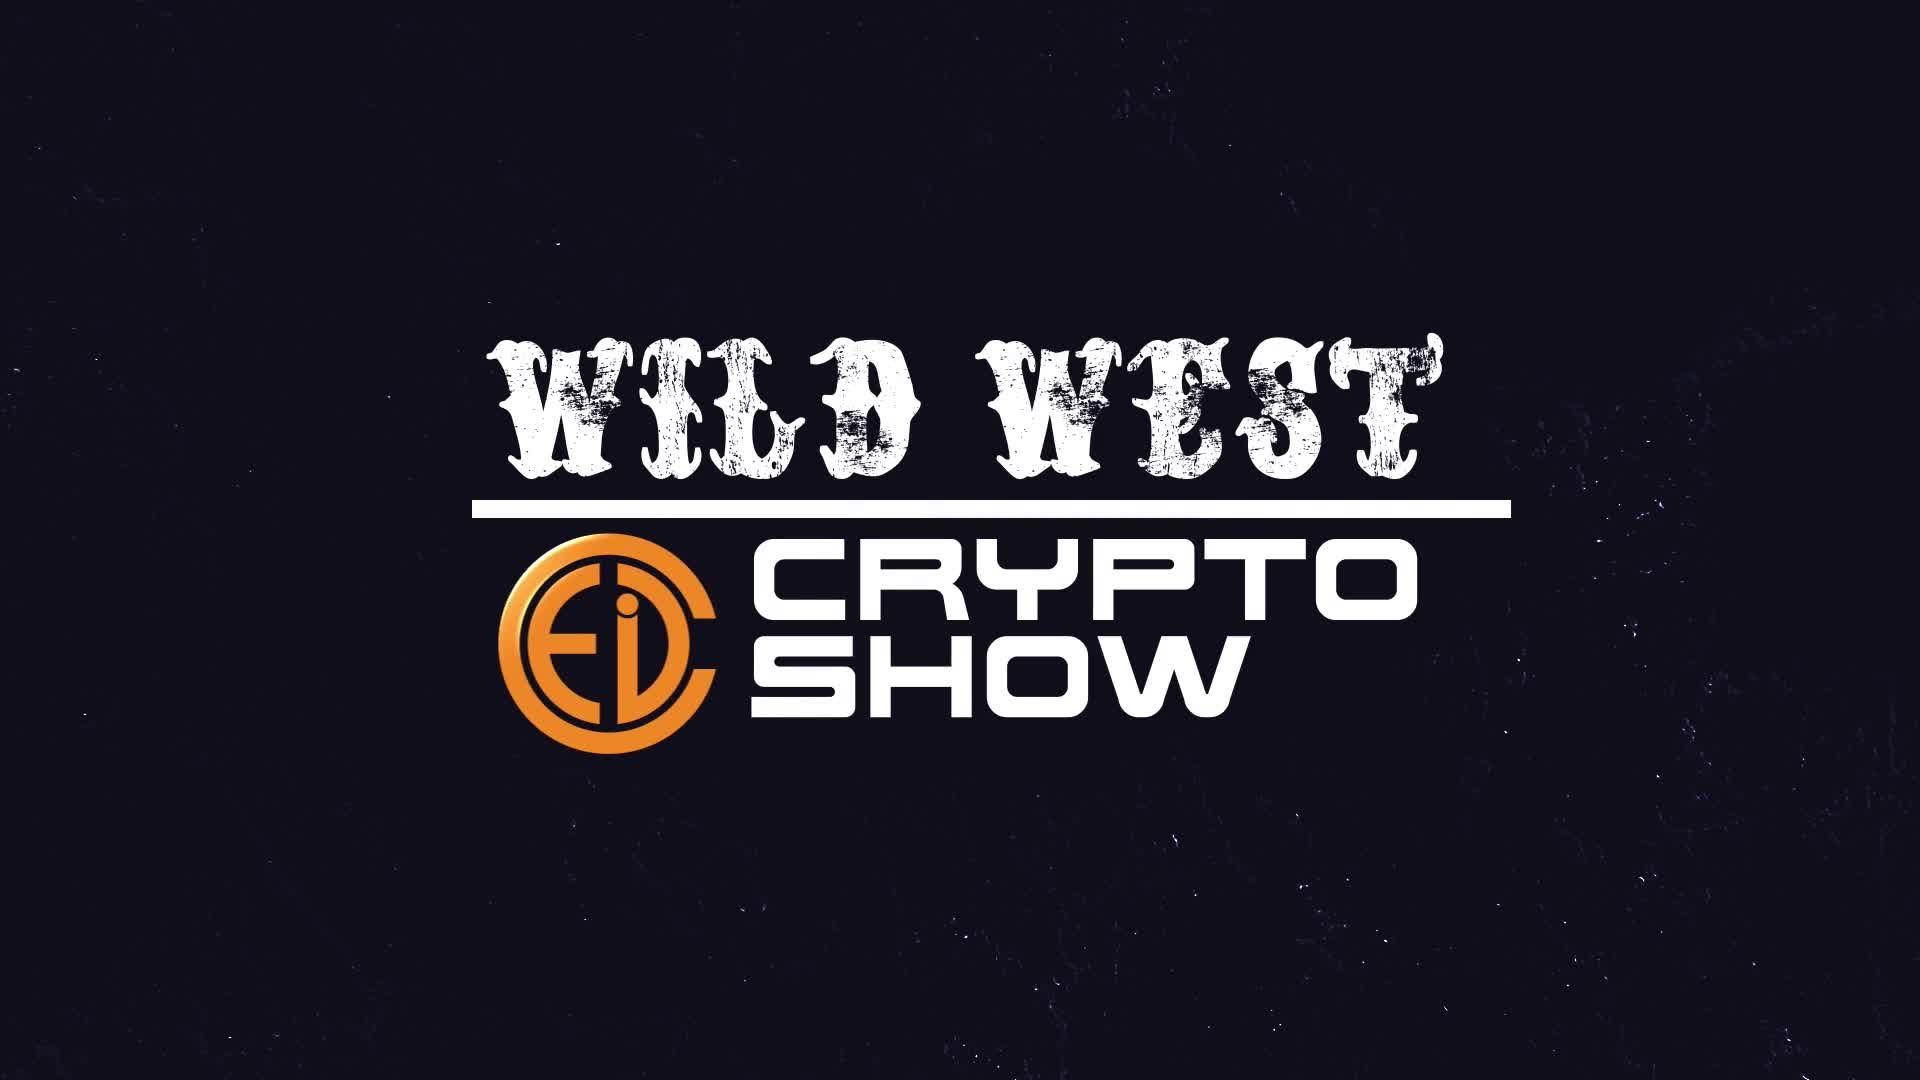 CryptoCurrencyWire Videos-The Wild West Crypto Show Cheers as Cryptos Go Up, Up, Up and Away | CryptoCurrencyWire on The Wild West Crypto Show | Episode 120